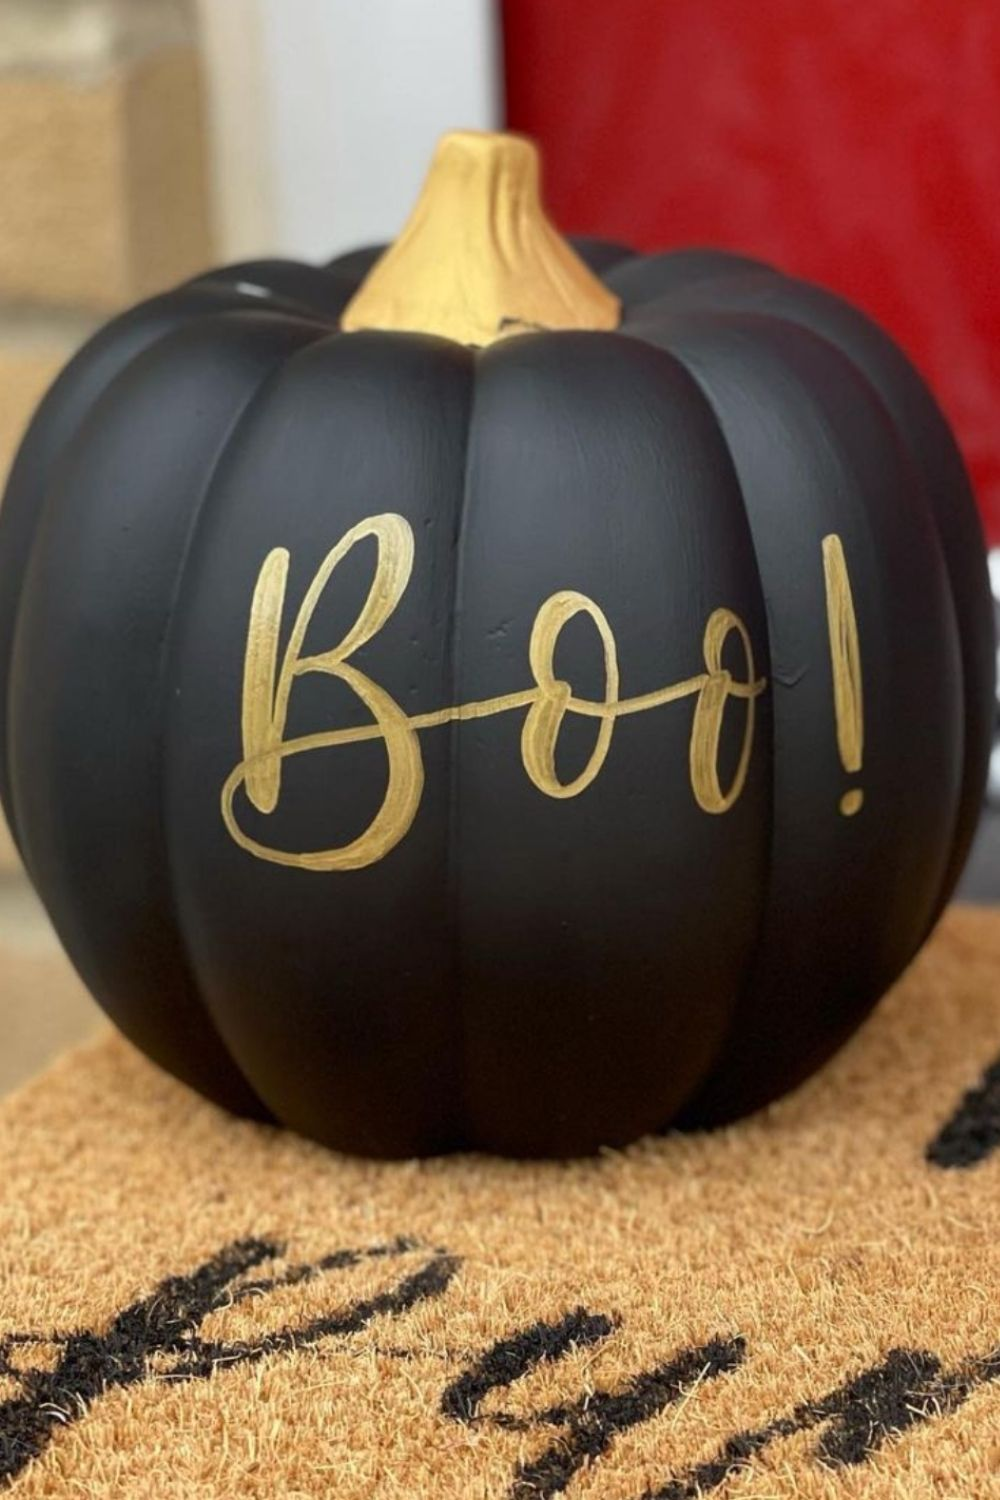 26 Best Pumpkin carving ideas and decorations for Halloween 2021